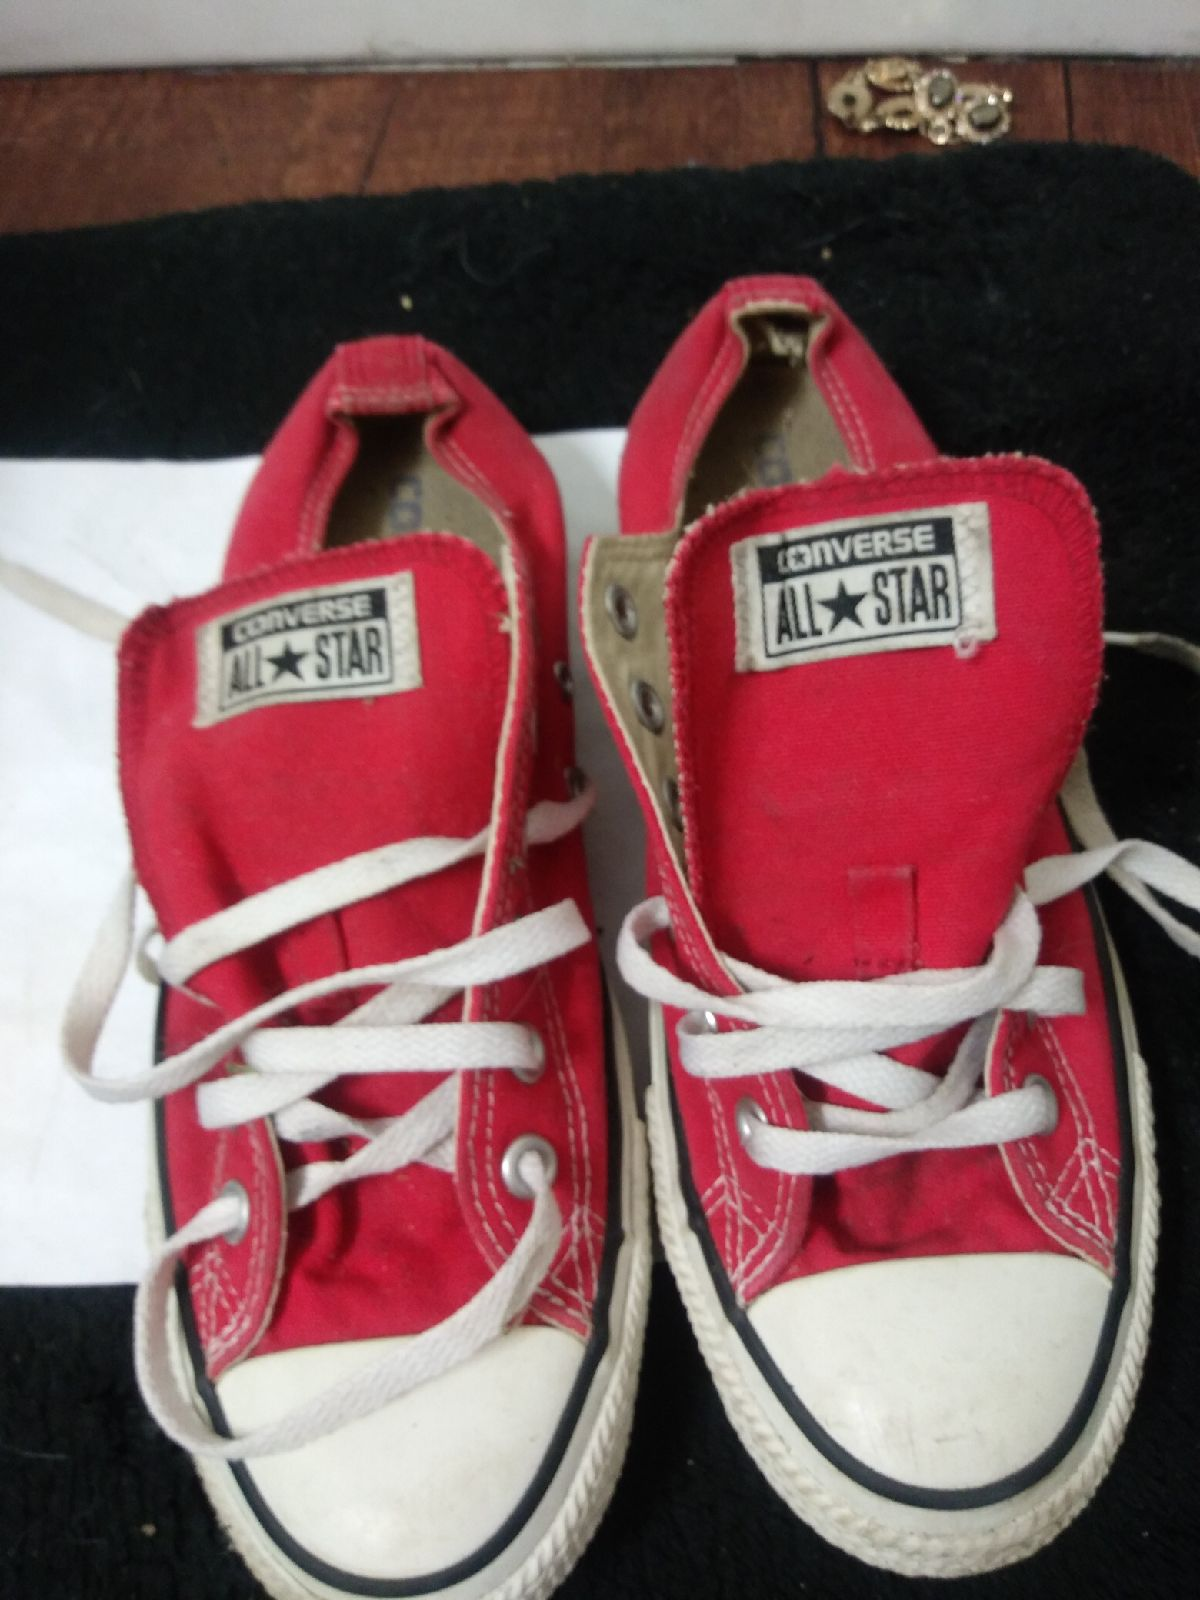 Converse classic shoes for kids